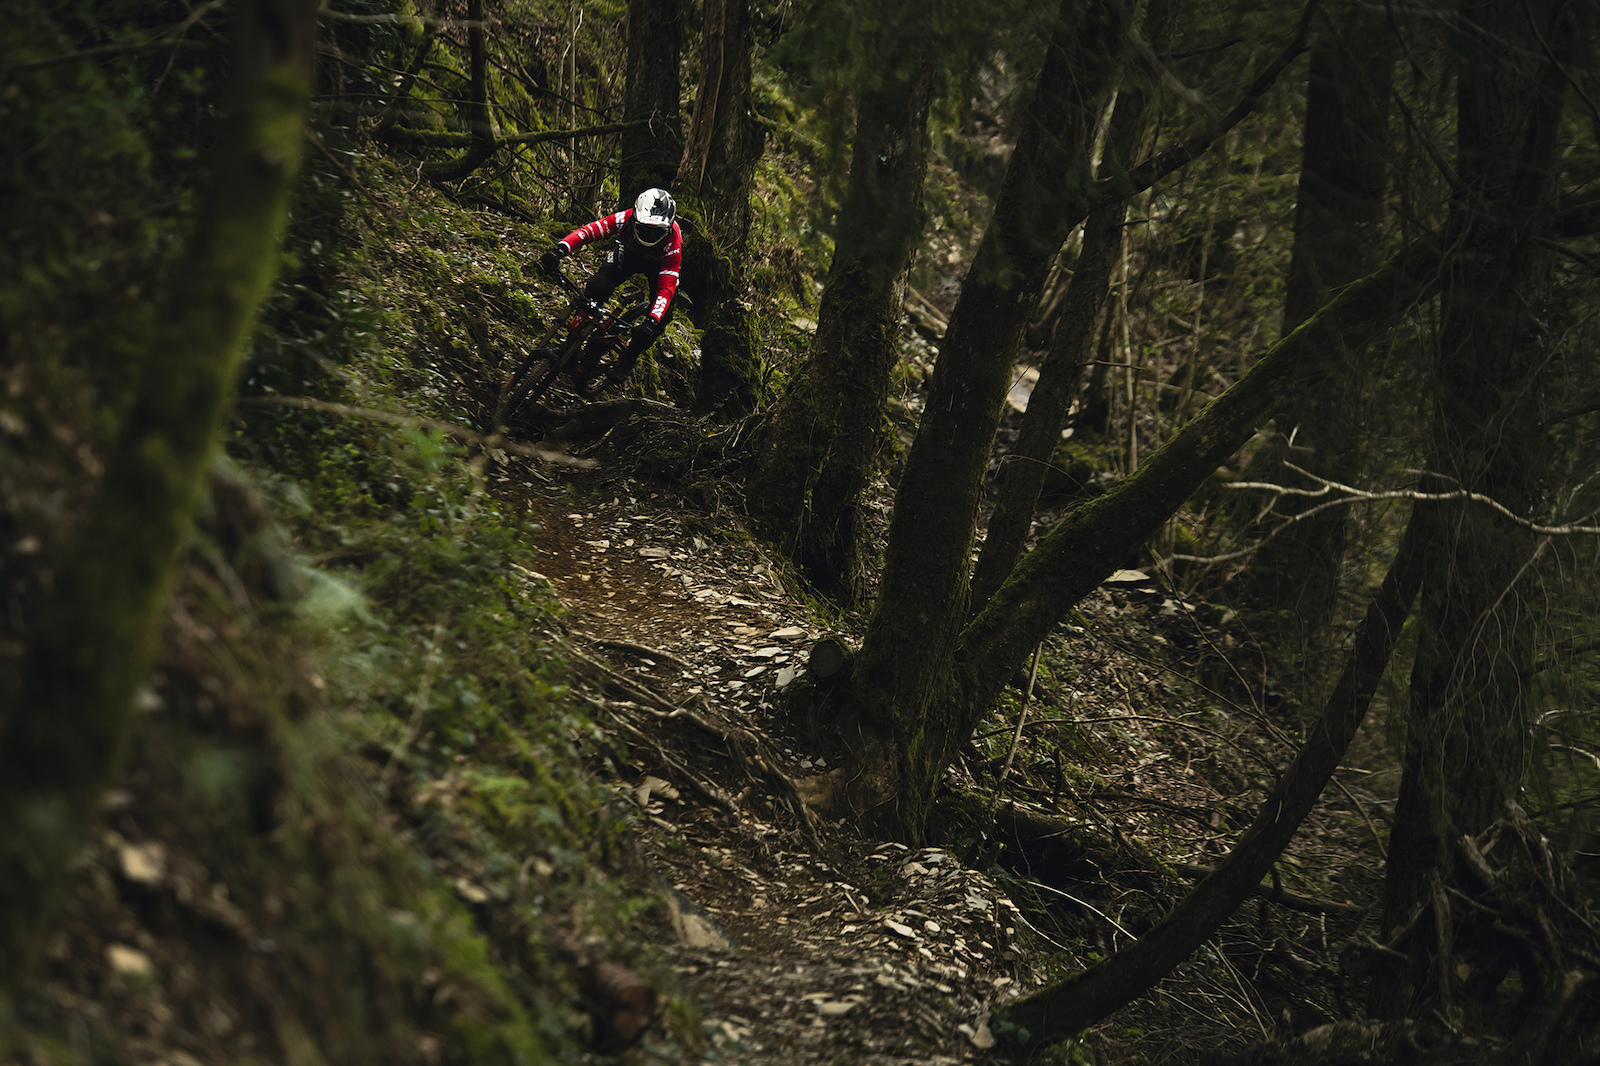 Steep loose and incredibly well crafted trail threads between the dark woodlands lower down the mountain side.